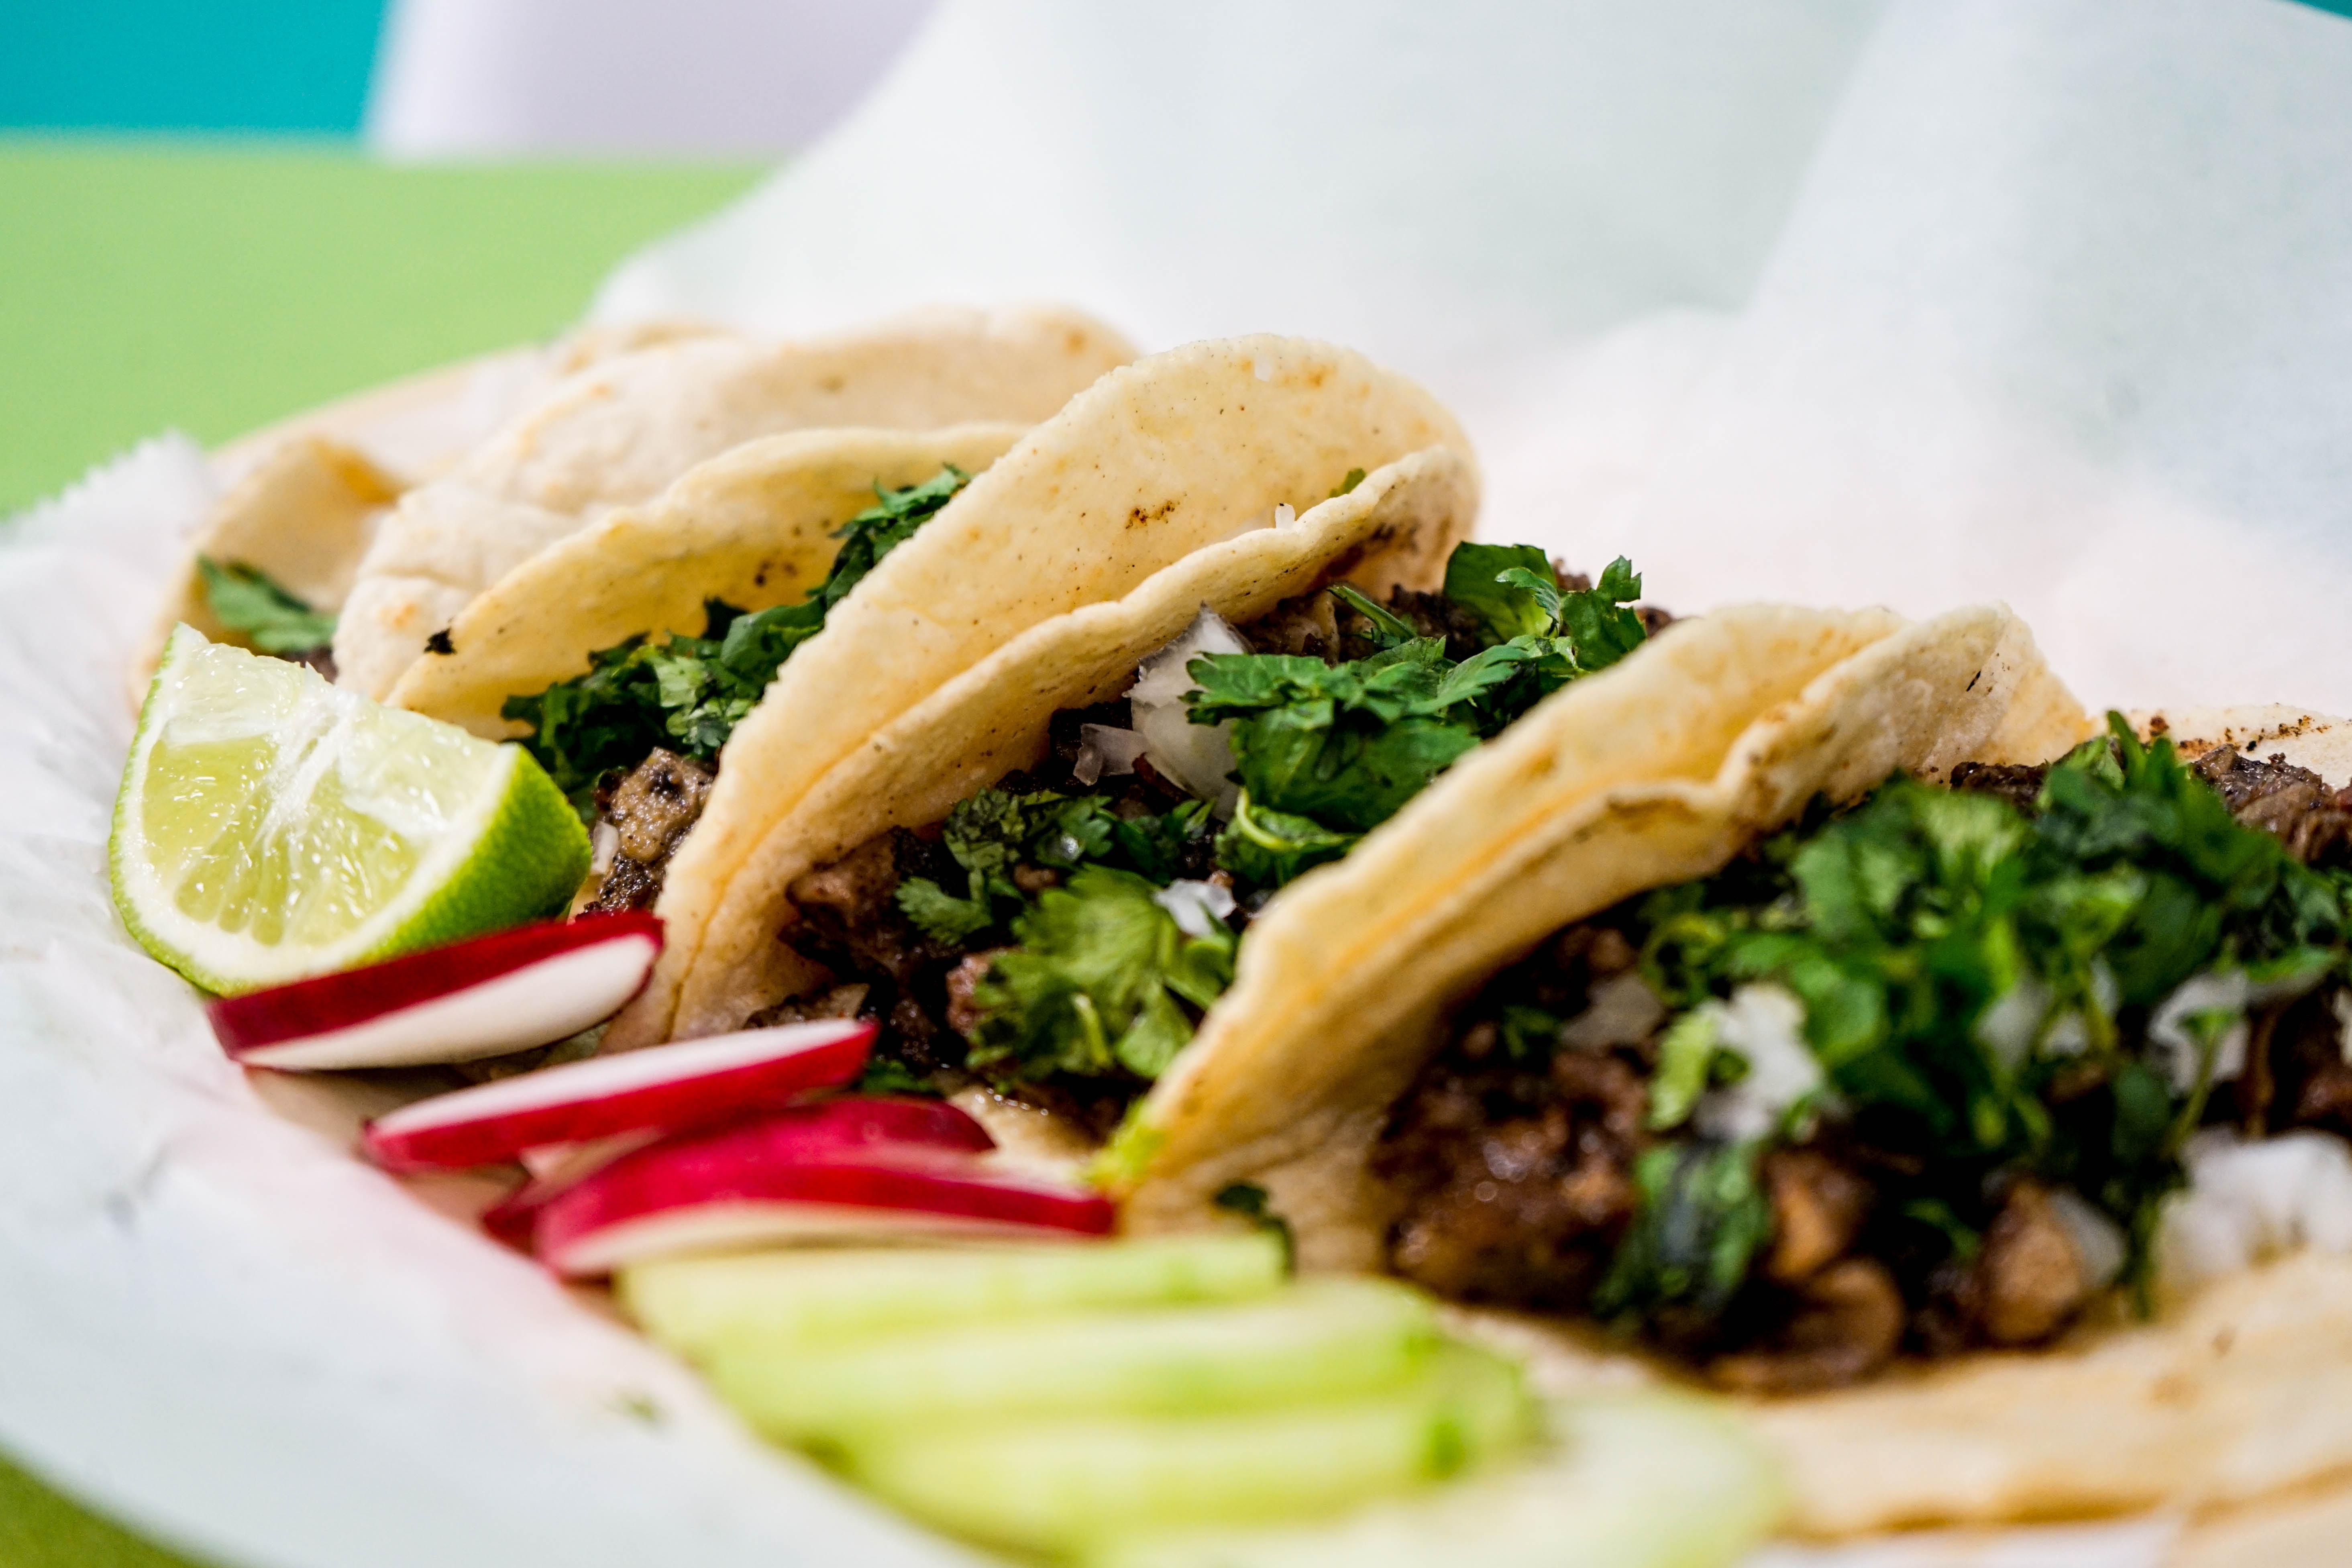 Take a Mexico City tour that focuses on tacos and mezcal